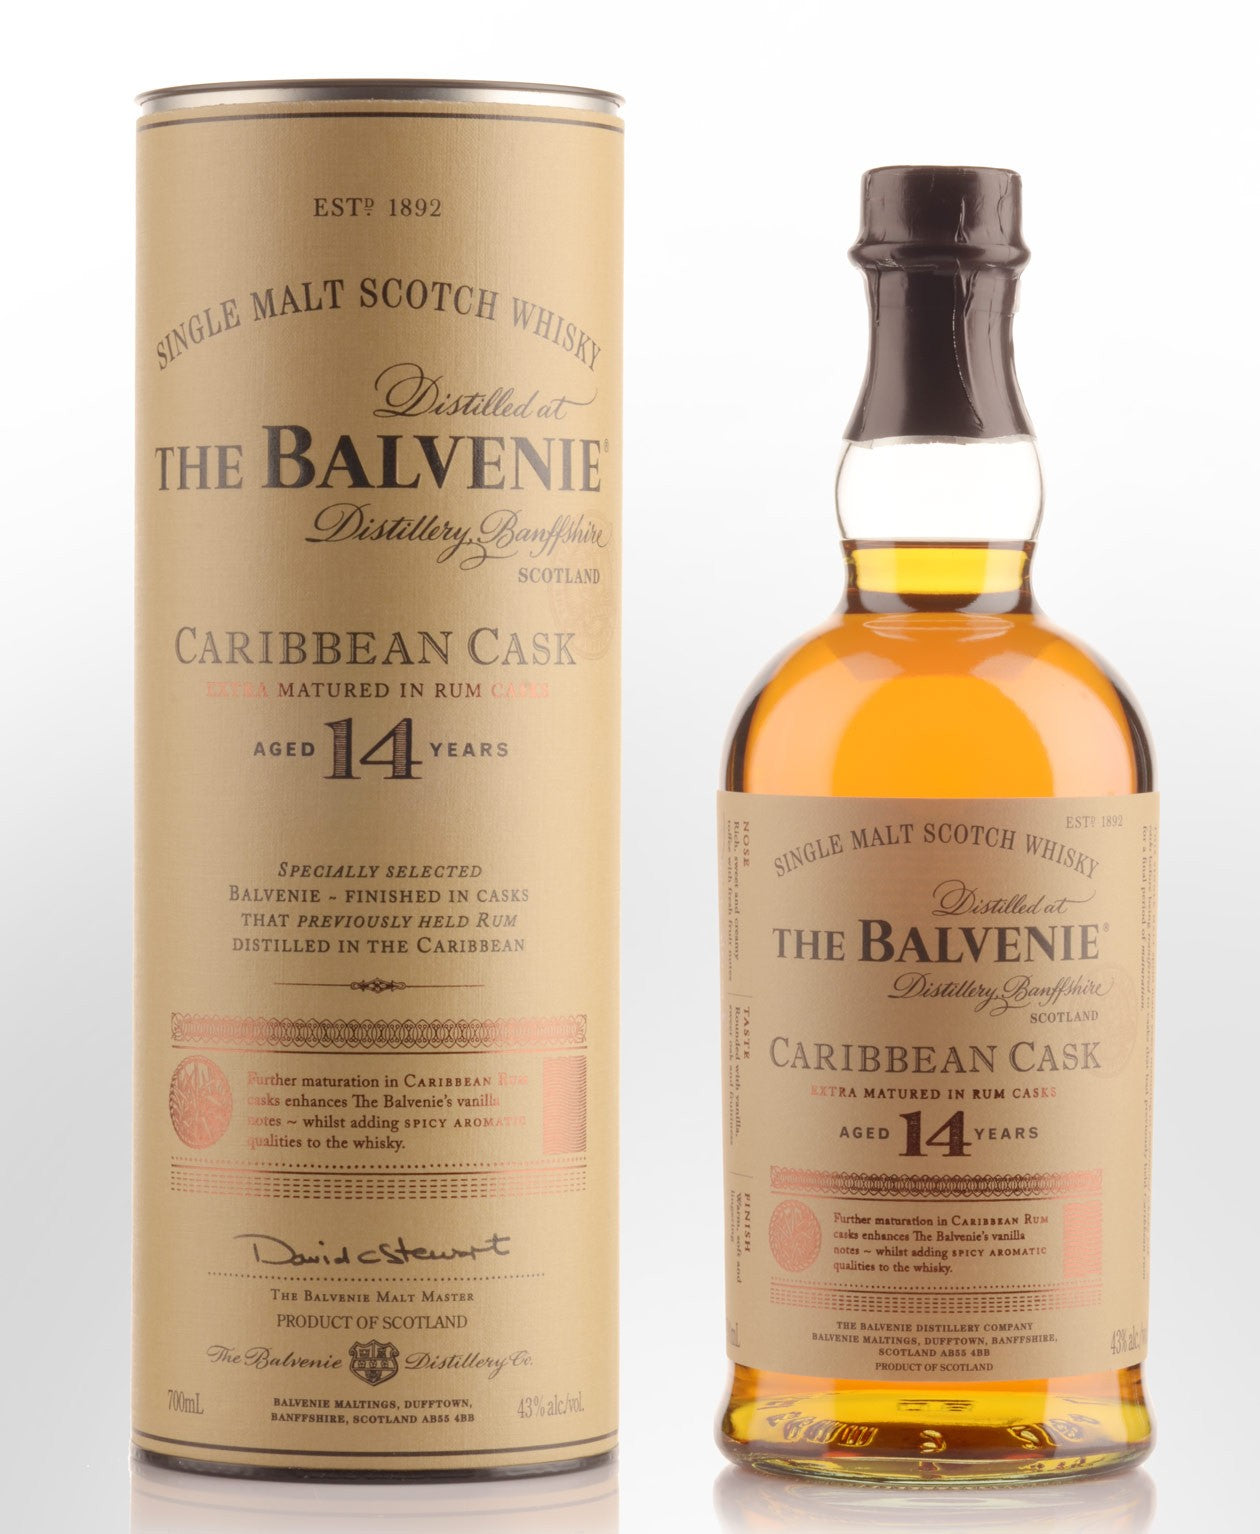 Balvenie Caribbean Cask 14 Year Old Scotch Whisky